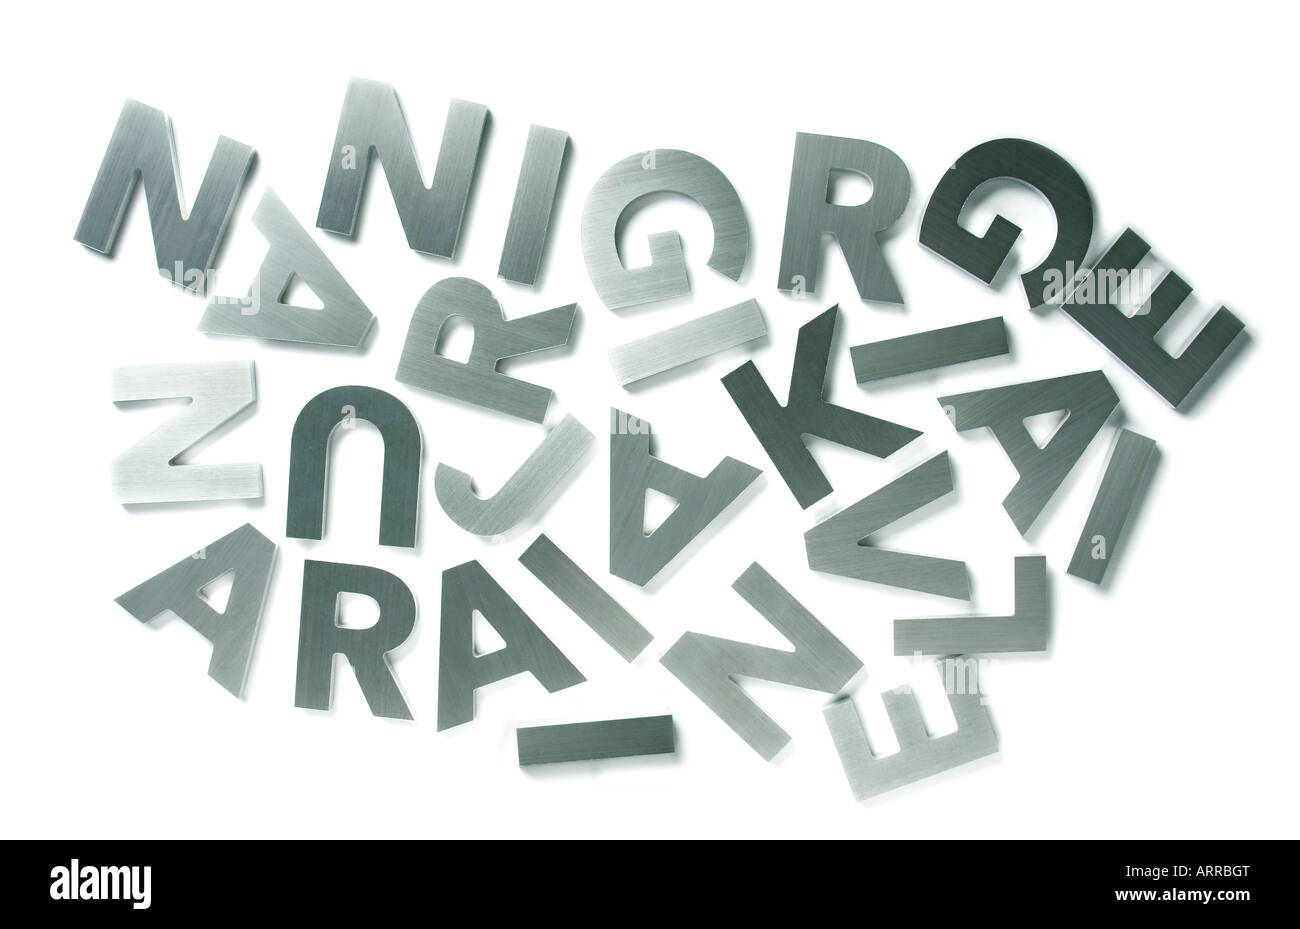 Stylish letters cut out of polished steel isolated on white - Stock Image